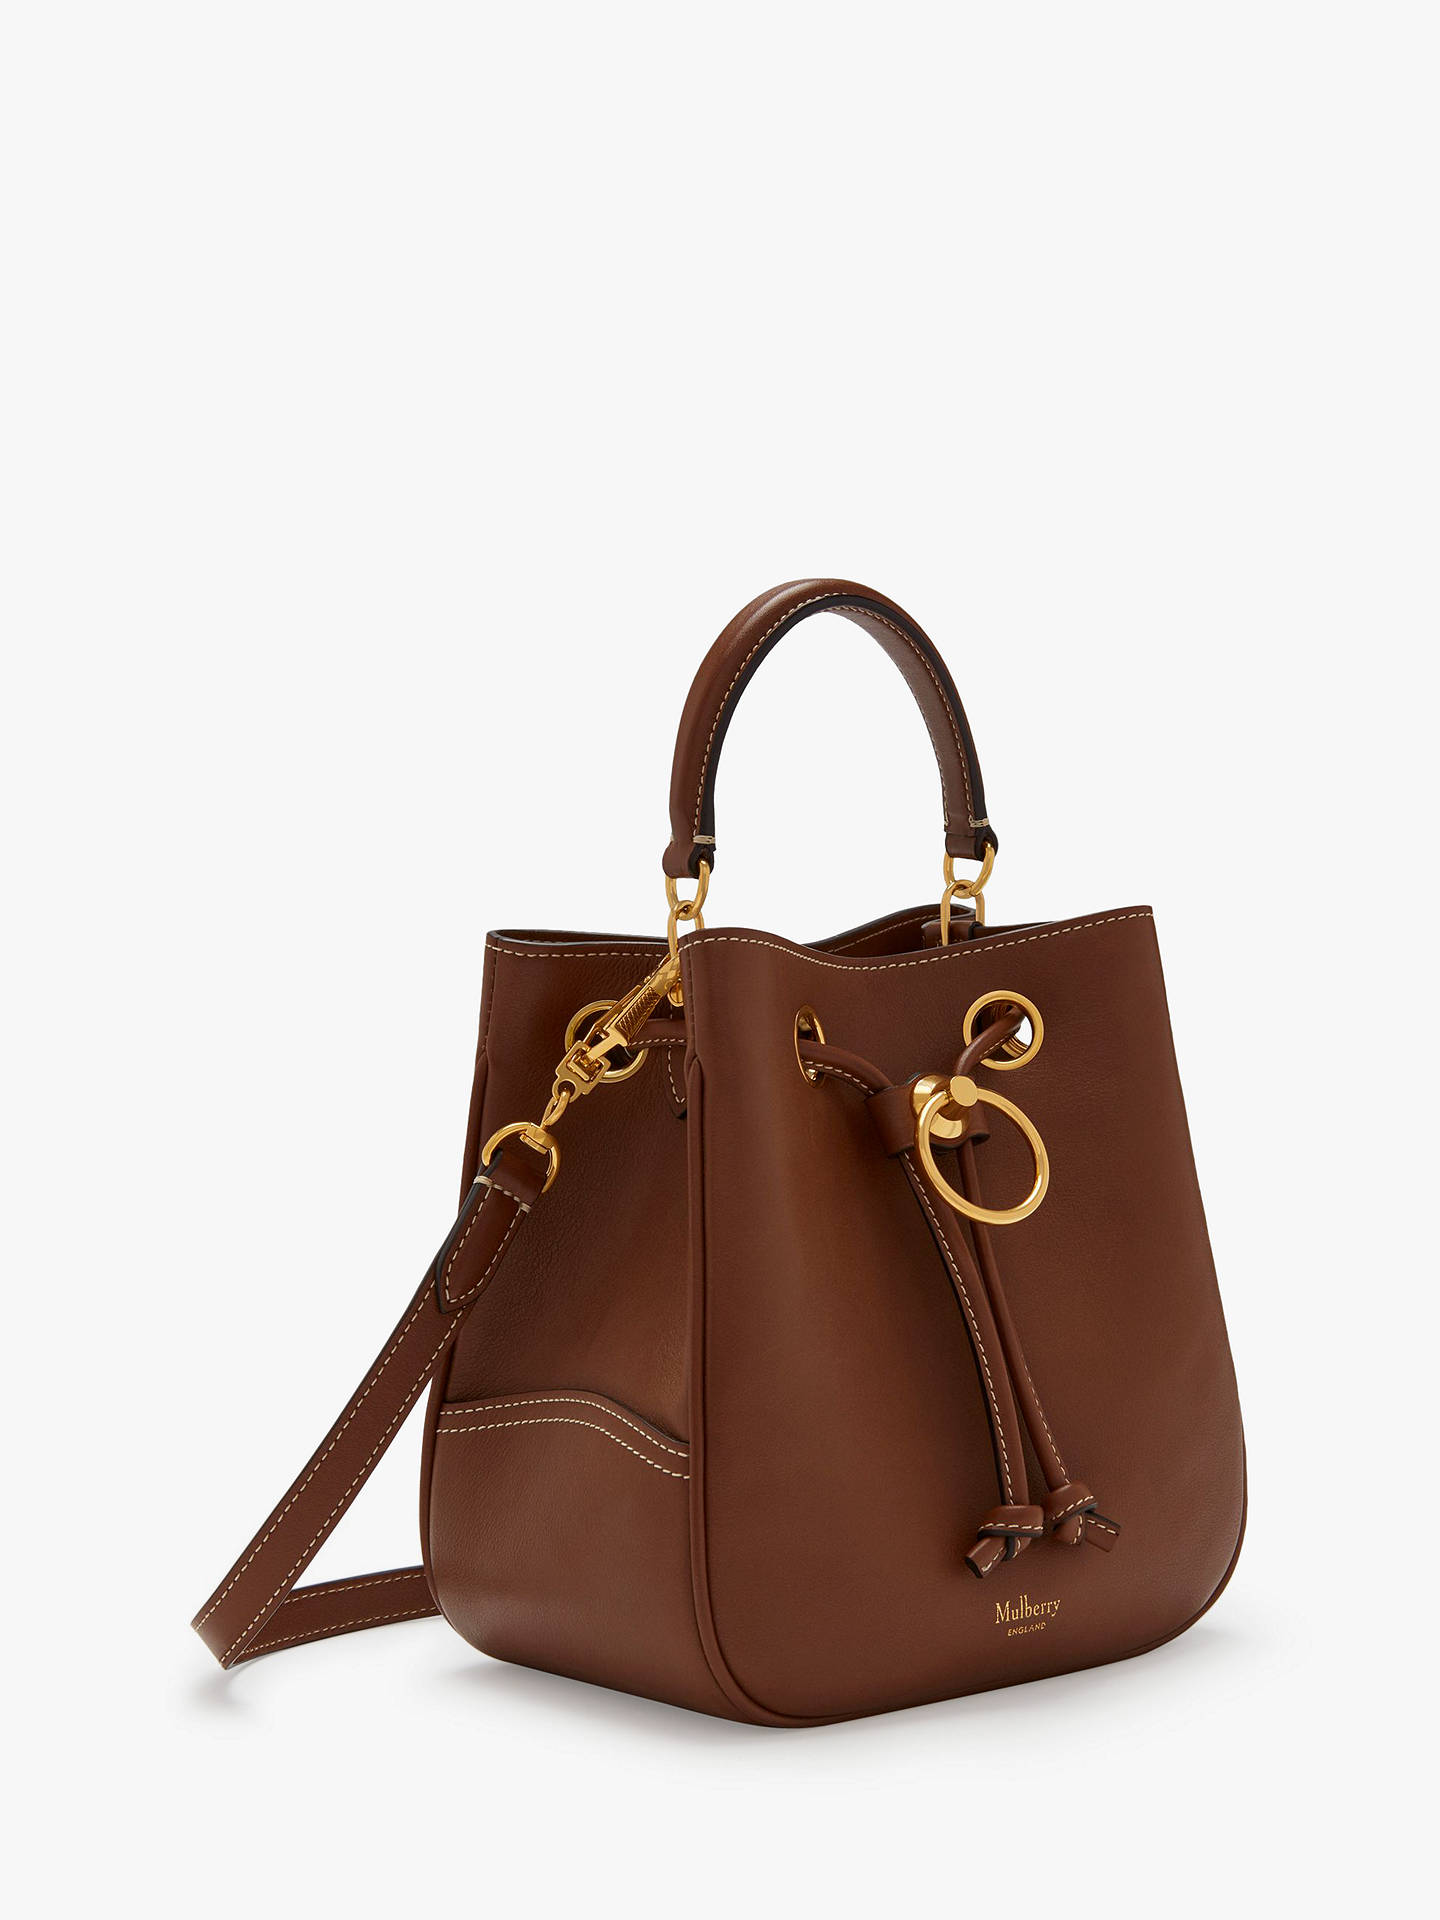 b98e589526 ... Buy Mulberry Small Hampstead Silky Calf Leather Handbag, Tan Online at  johnlewis.com ...